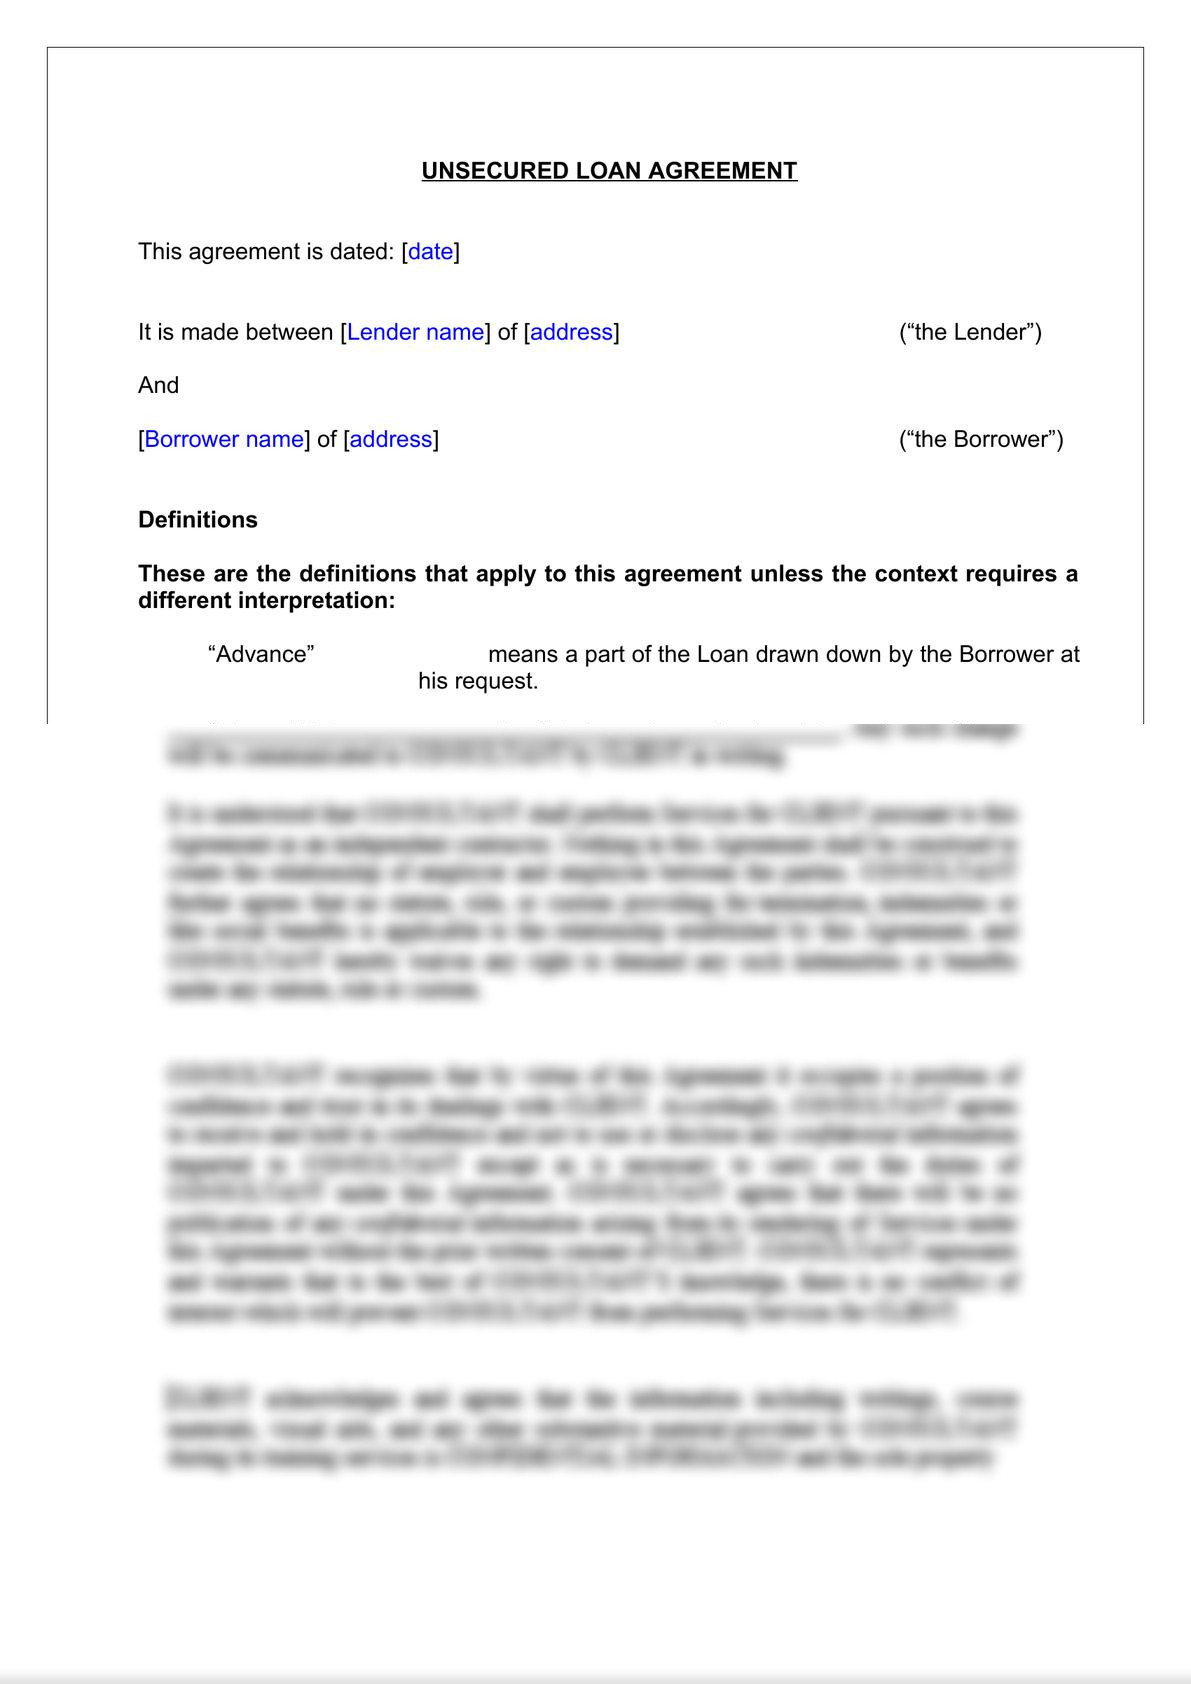 Unsecured Loan Agreement-2